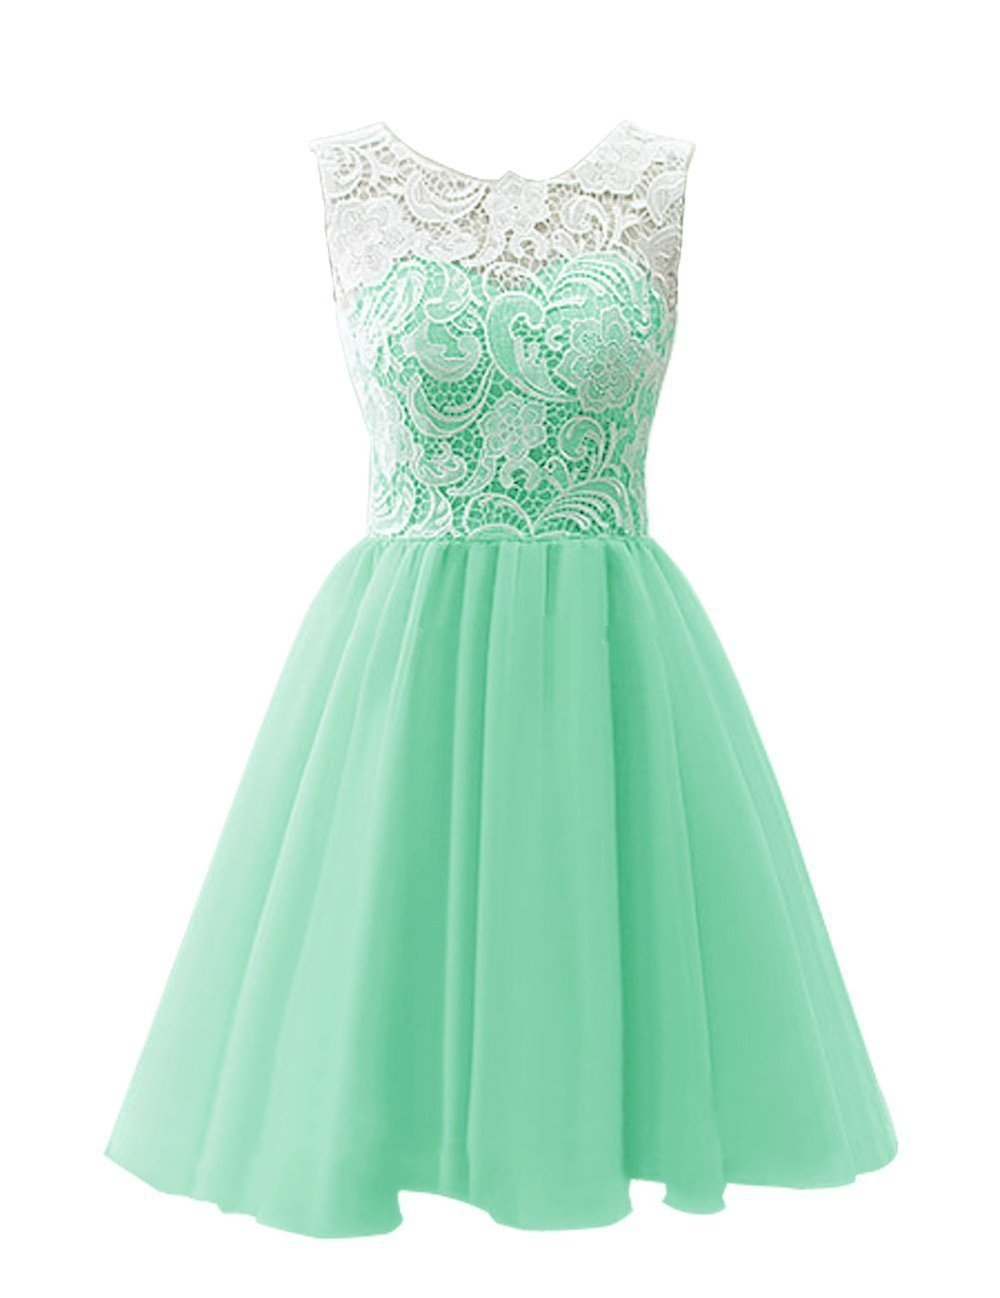 Online Get Cheap Cute Turquoise Dresses -Aliexpress.com | Alibaba ...